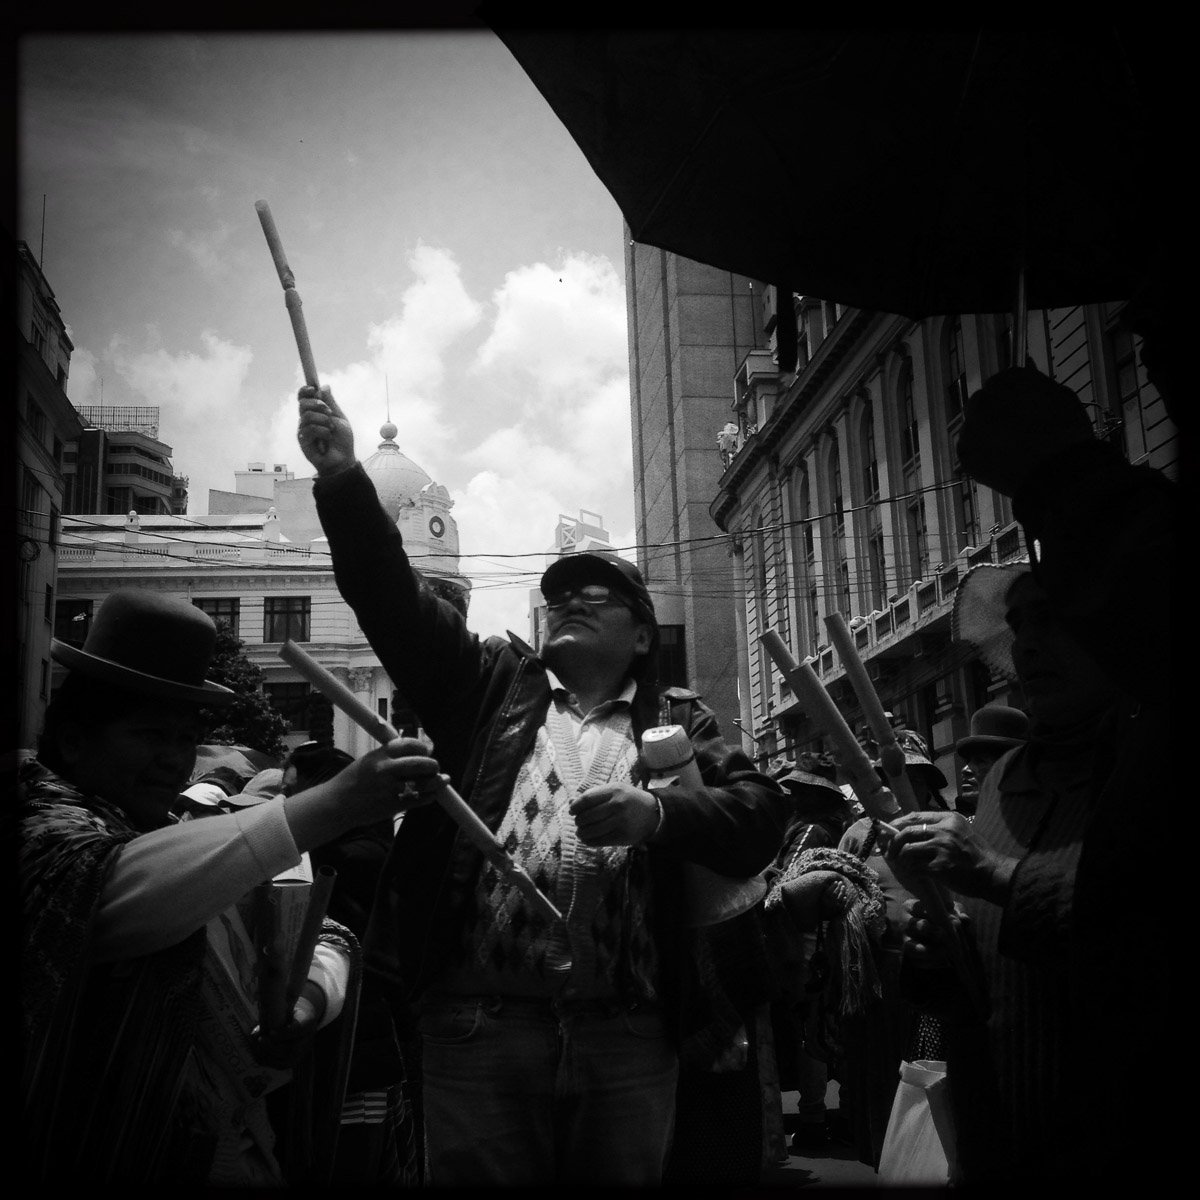 La Paz seems to have protests of some form or another every day